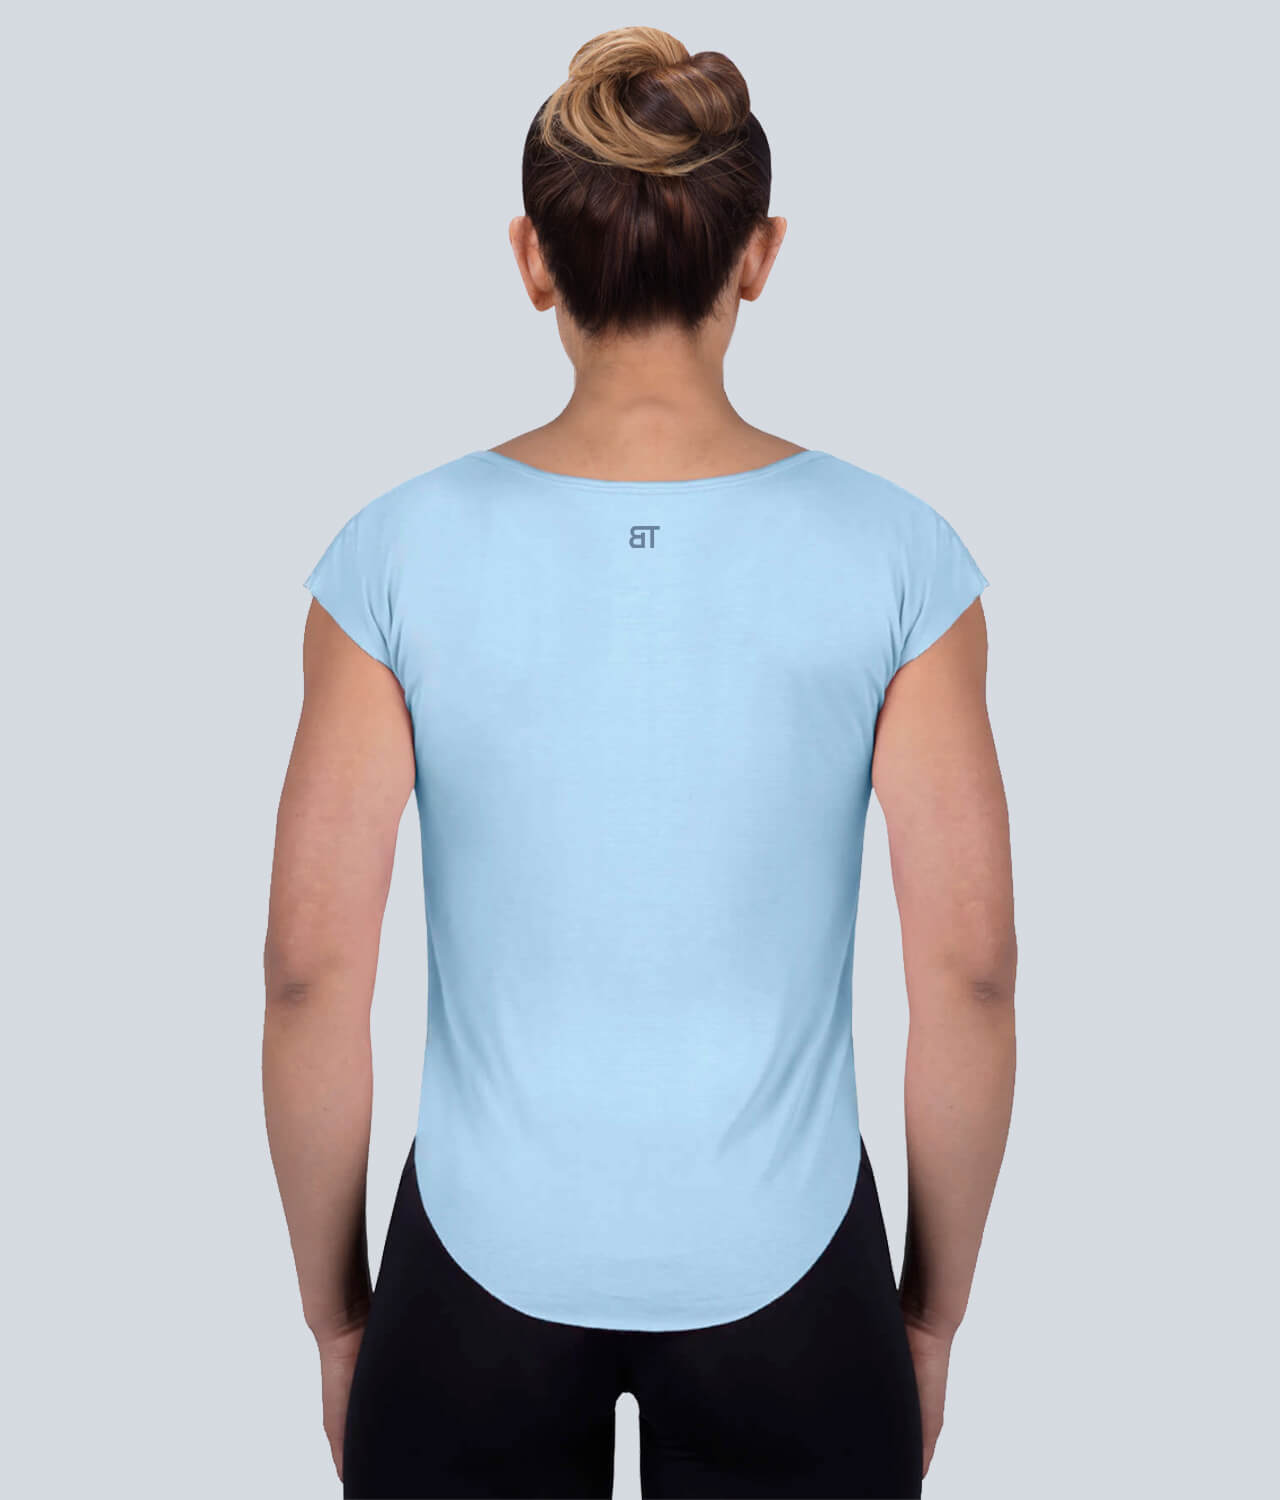 Born Tough Capped Sheer Accentuated Seams Blue Sleeveless Gym Workout Shirt for Women